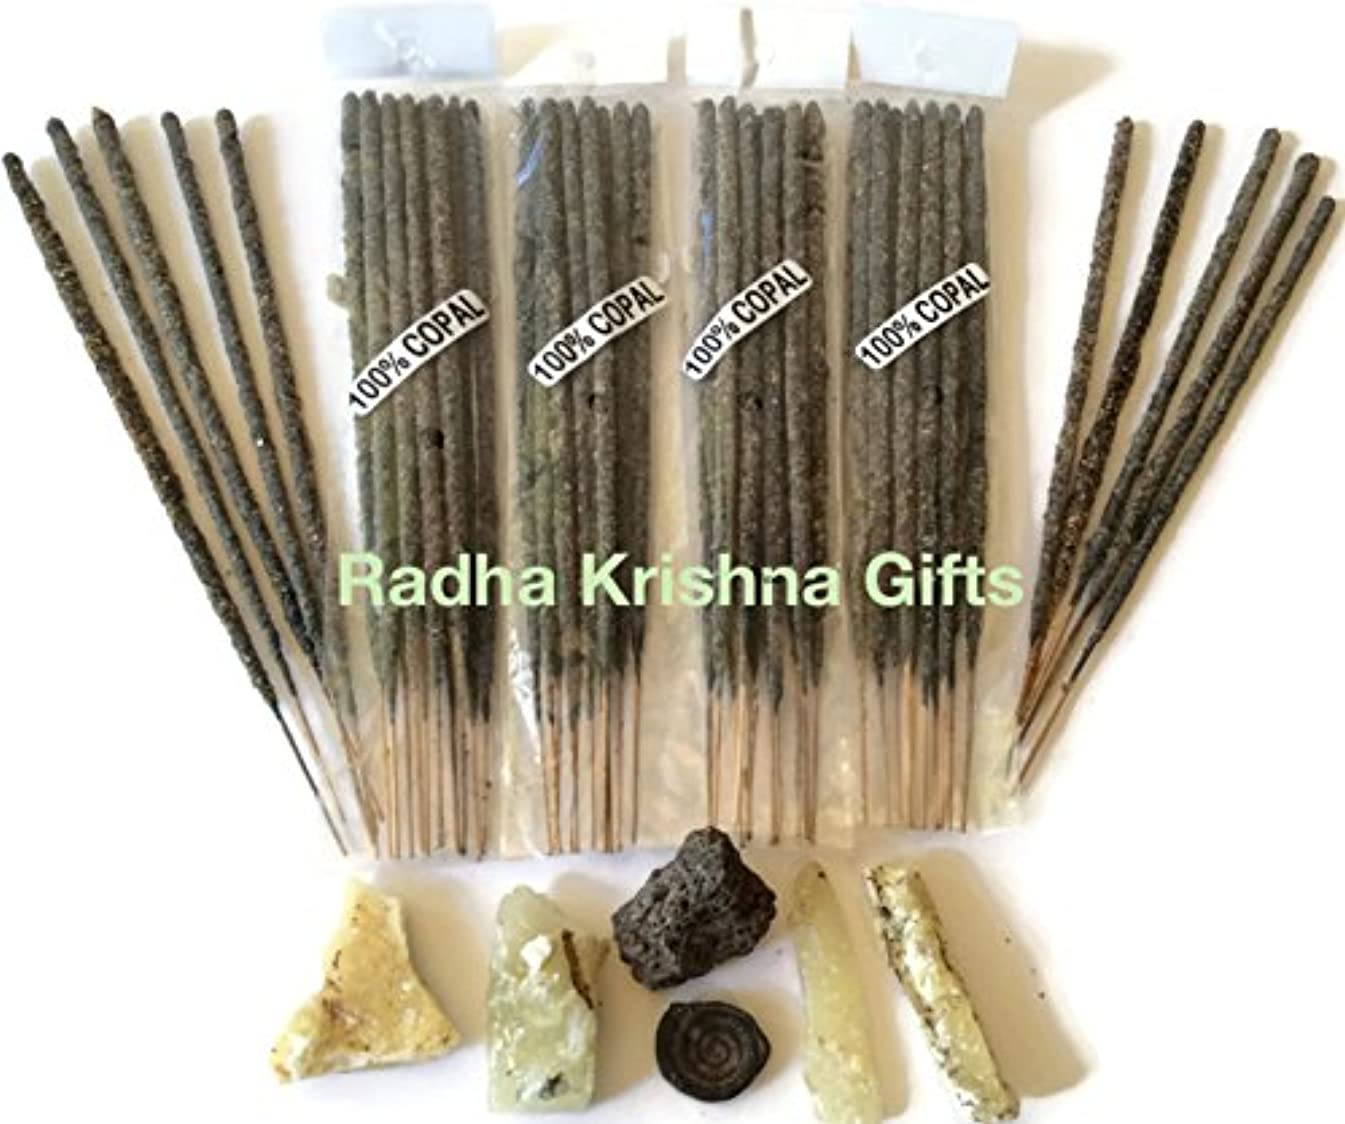 Mexican Copal Incense, 4 Bags with 10 Sticks Each. Handmade in Mexico with Grey Copal Resin.